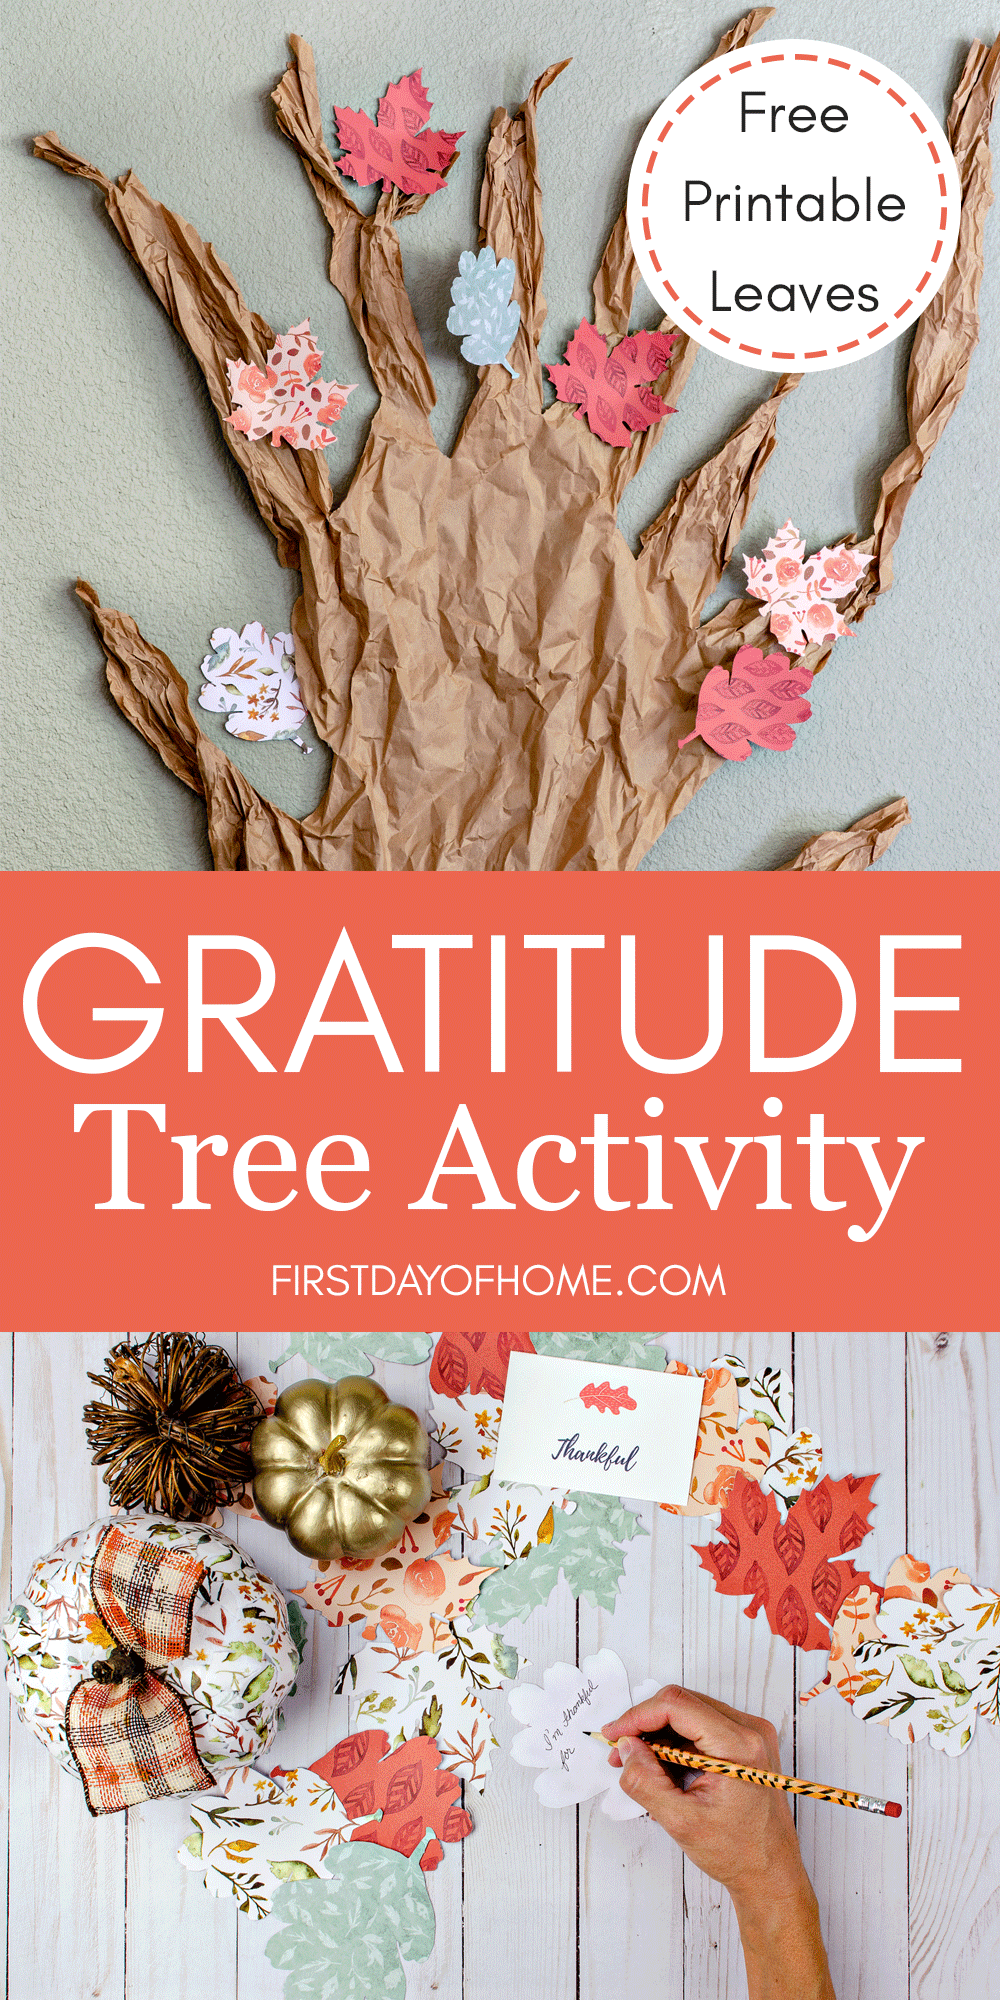 Gratitude tree activity for families